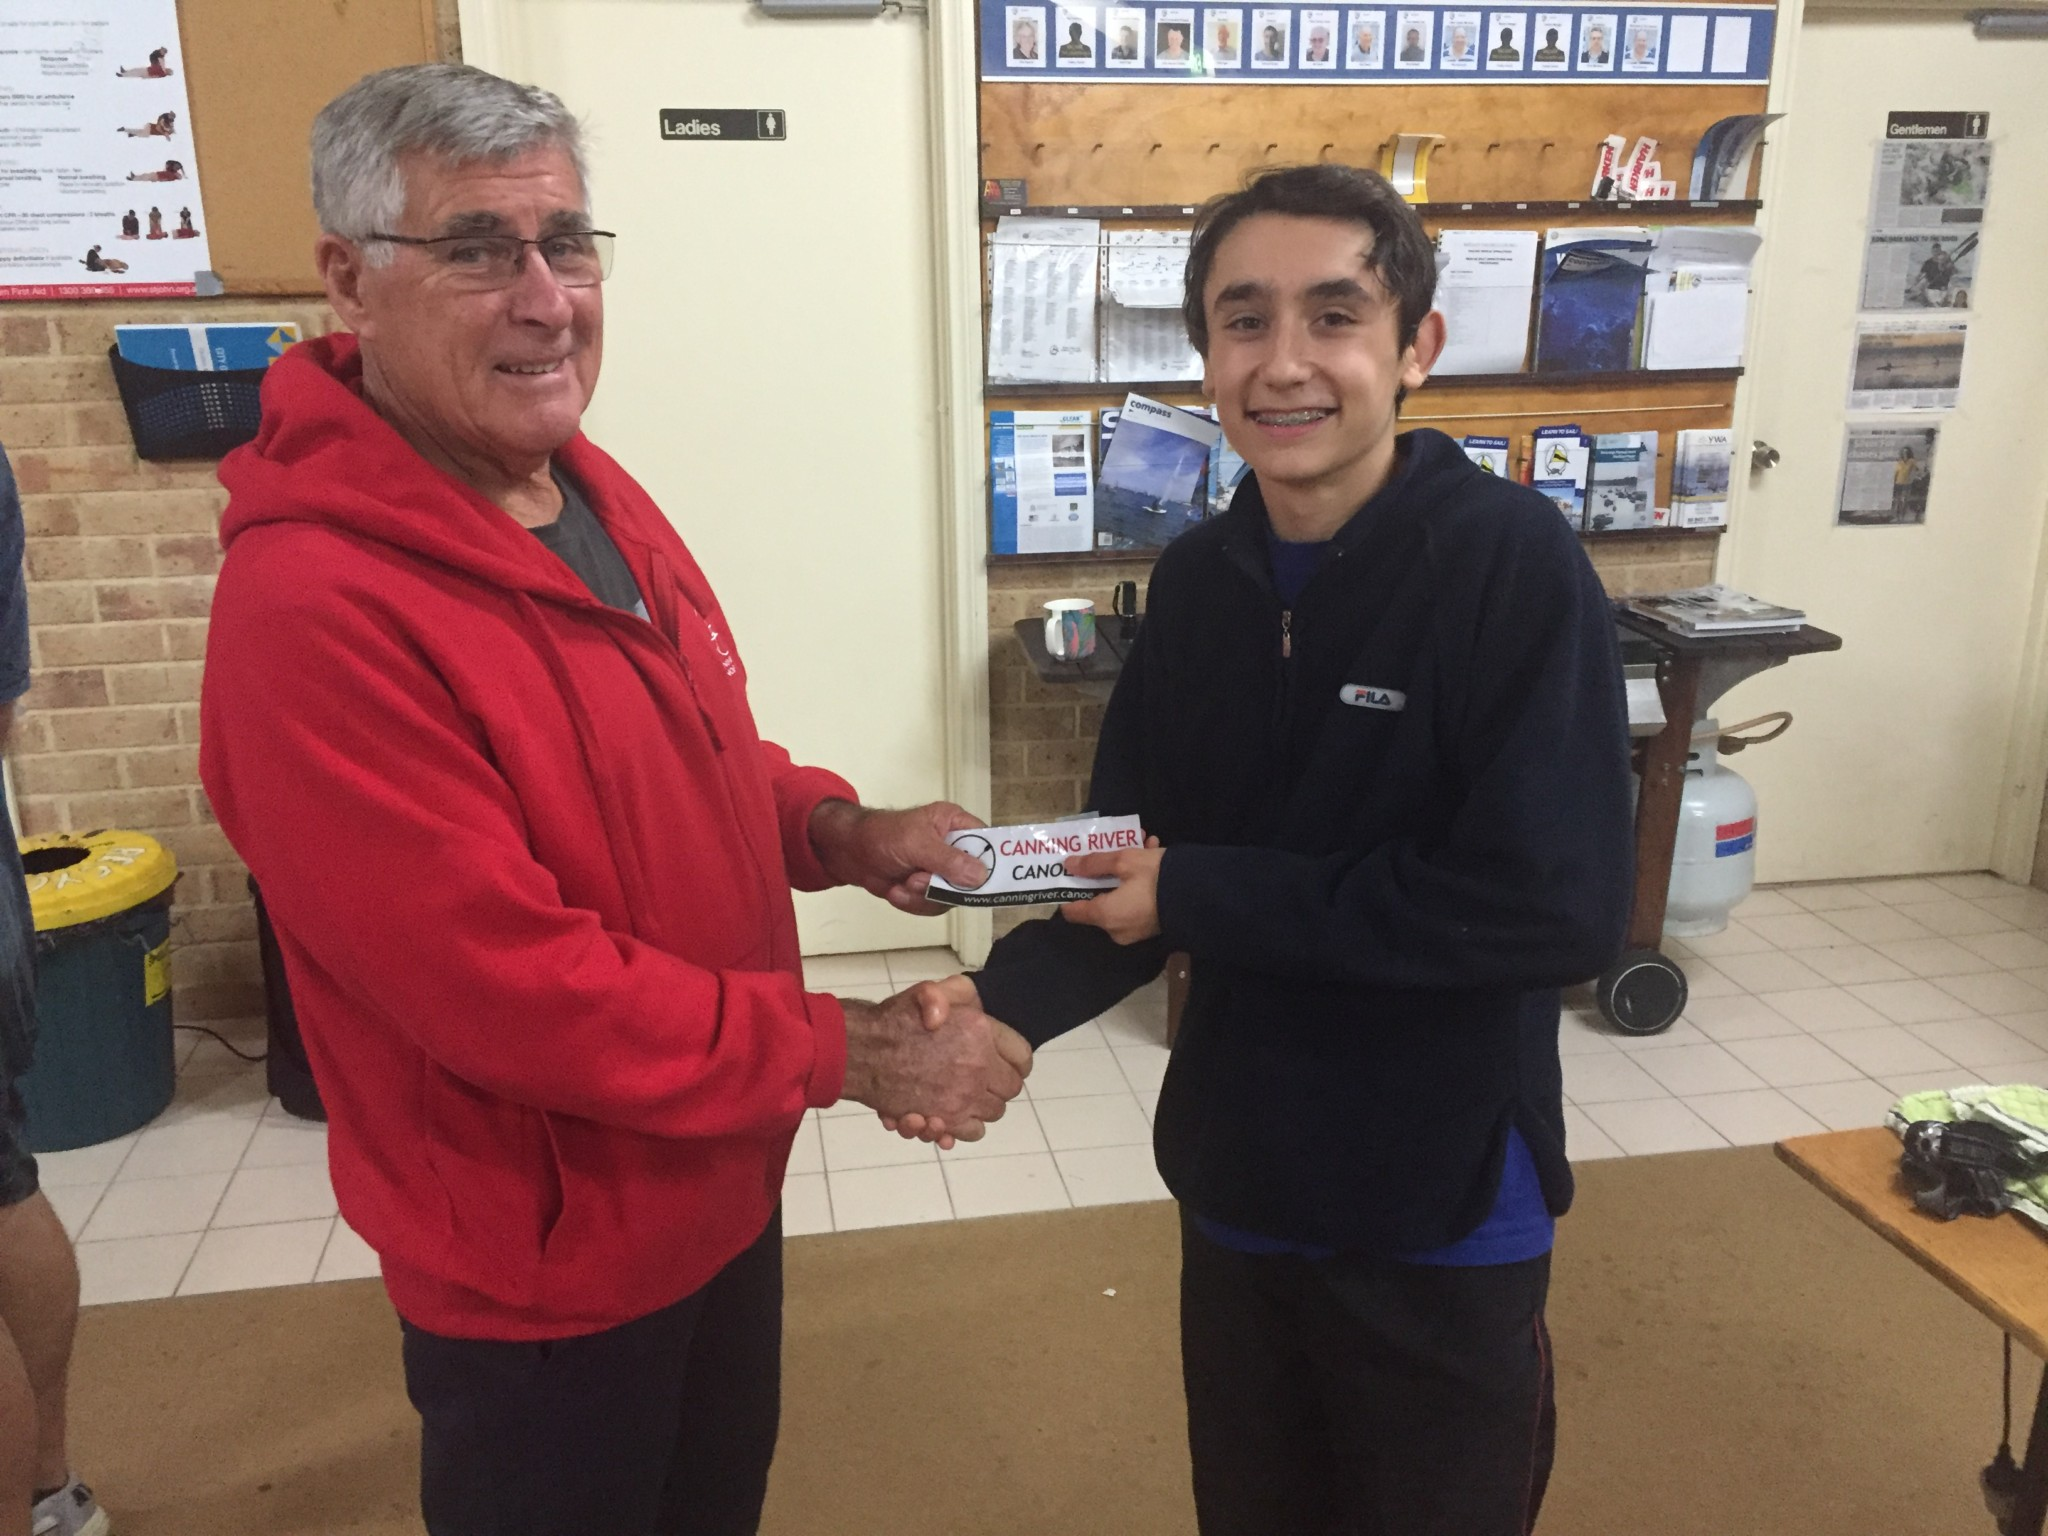 Tues 19th July 2016 : Tonight's photo shows club member Joe Wilson presenting Luke Egger with a movie voucher